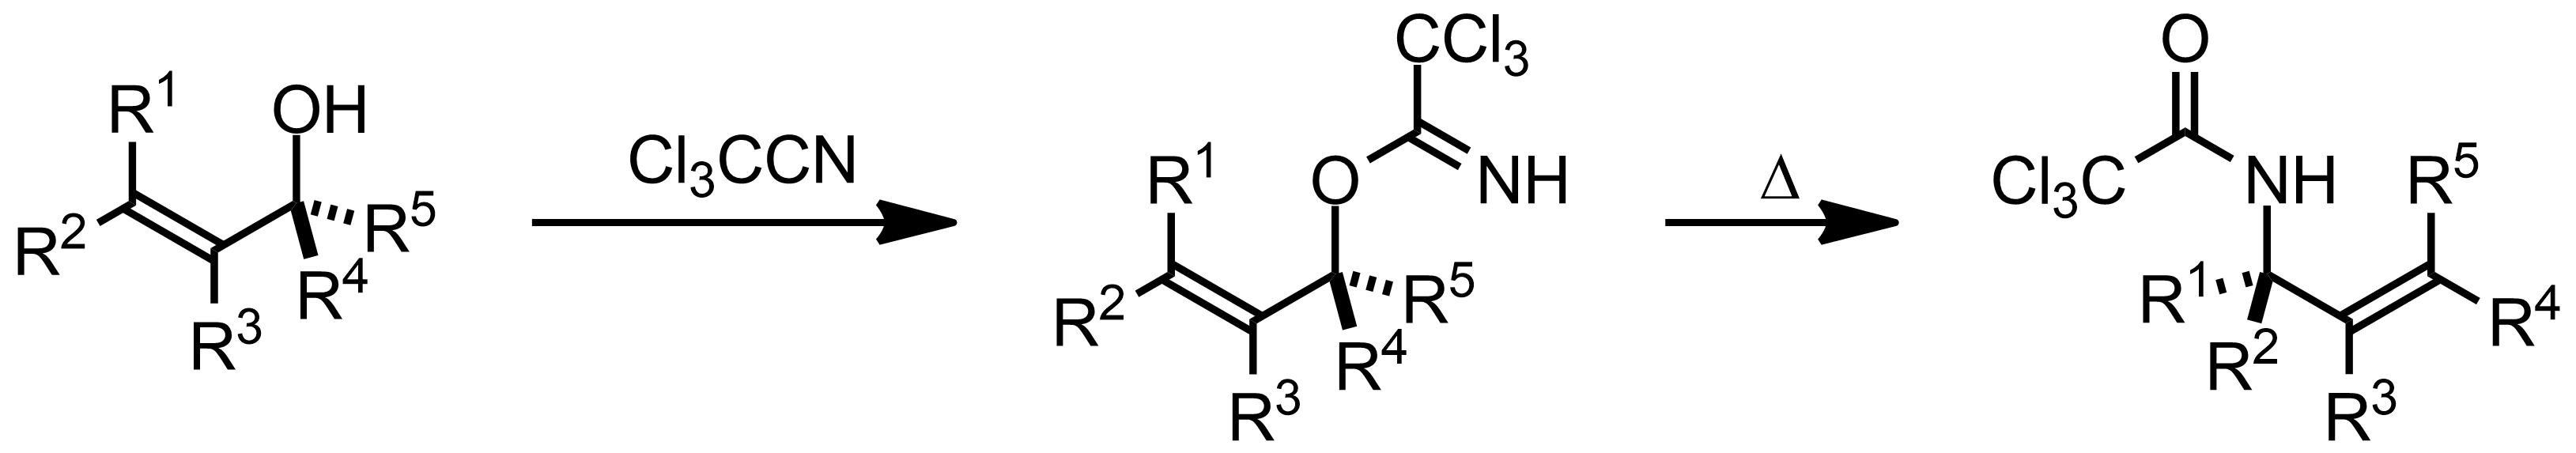 Schematic representation of the Overman Rearrangement.